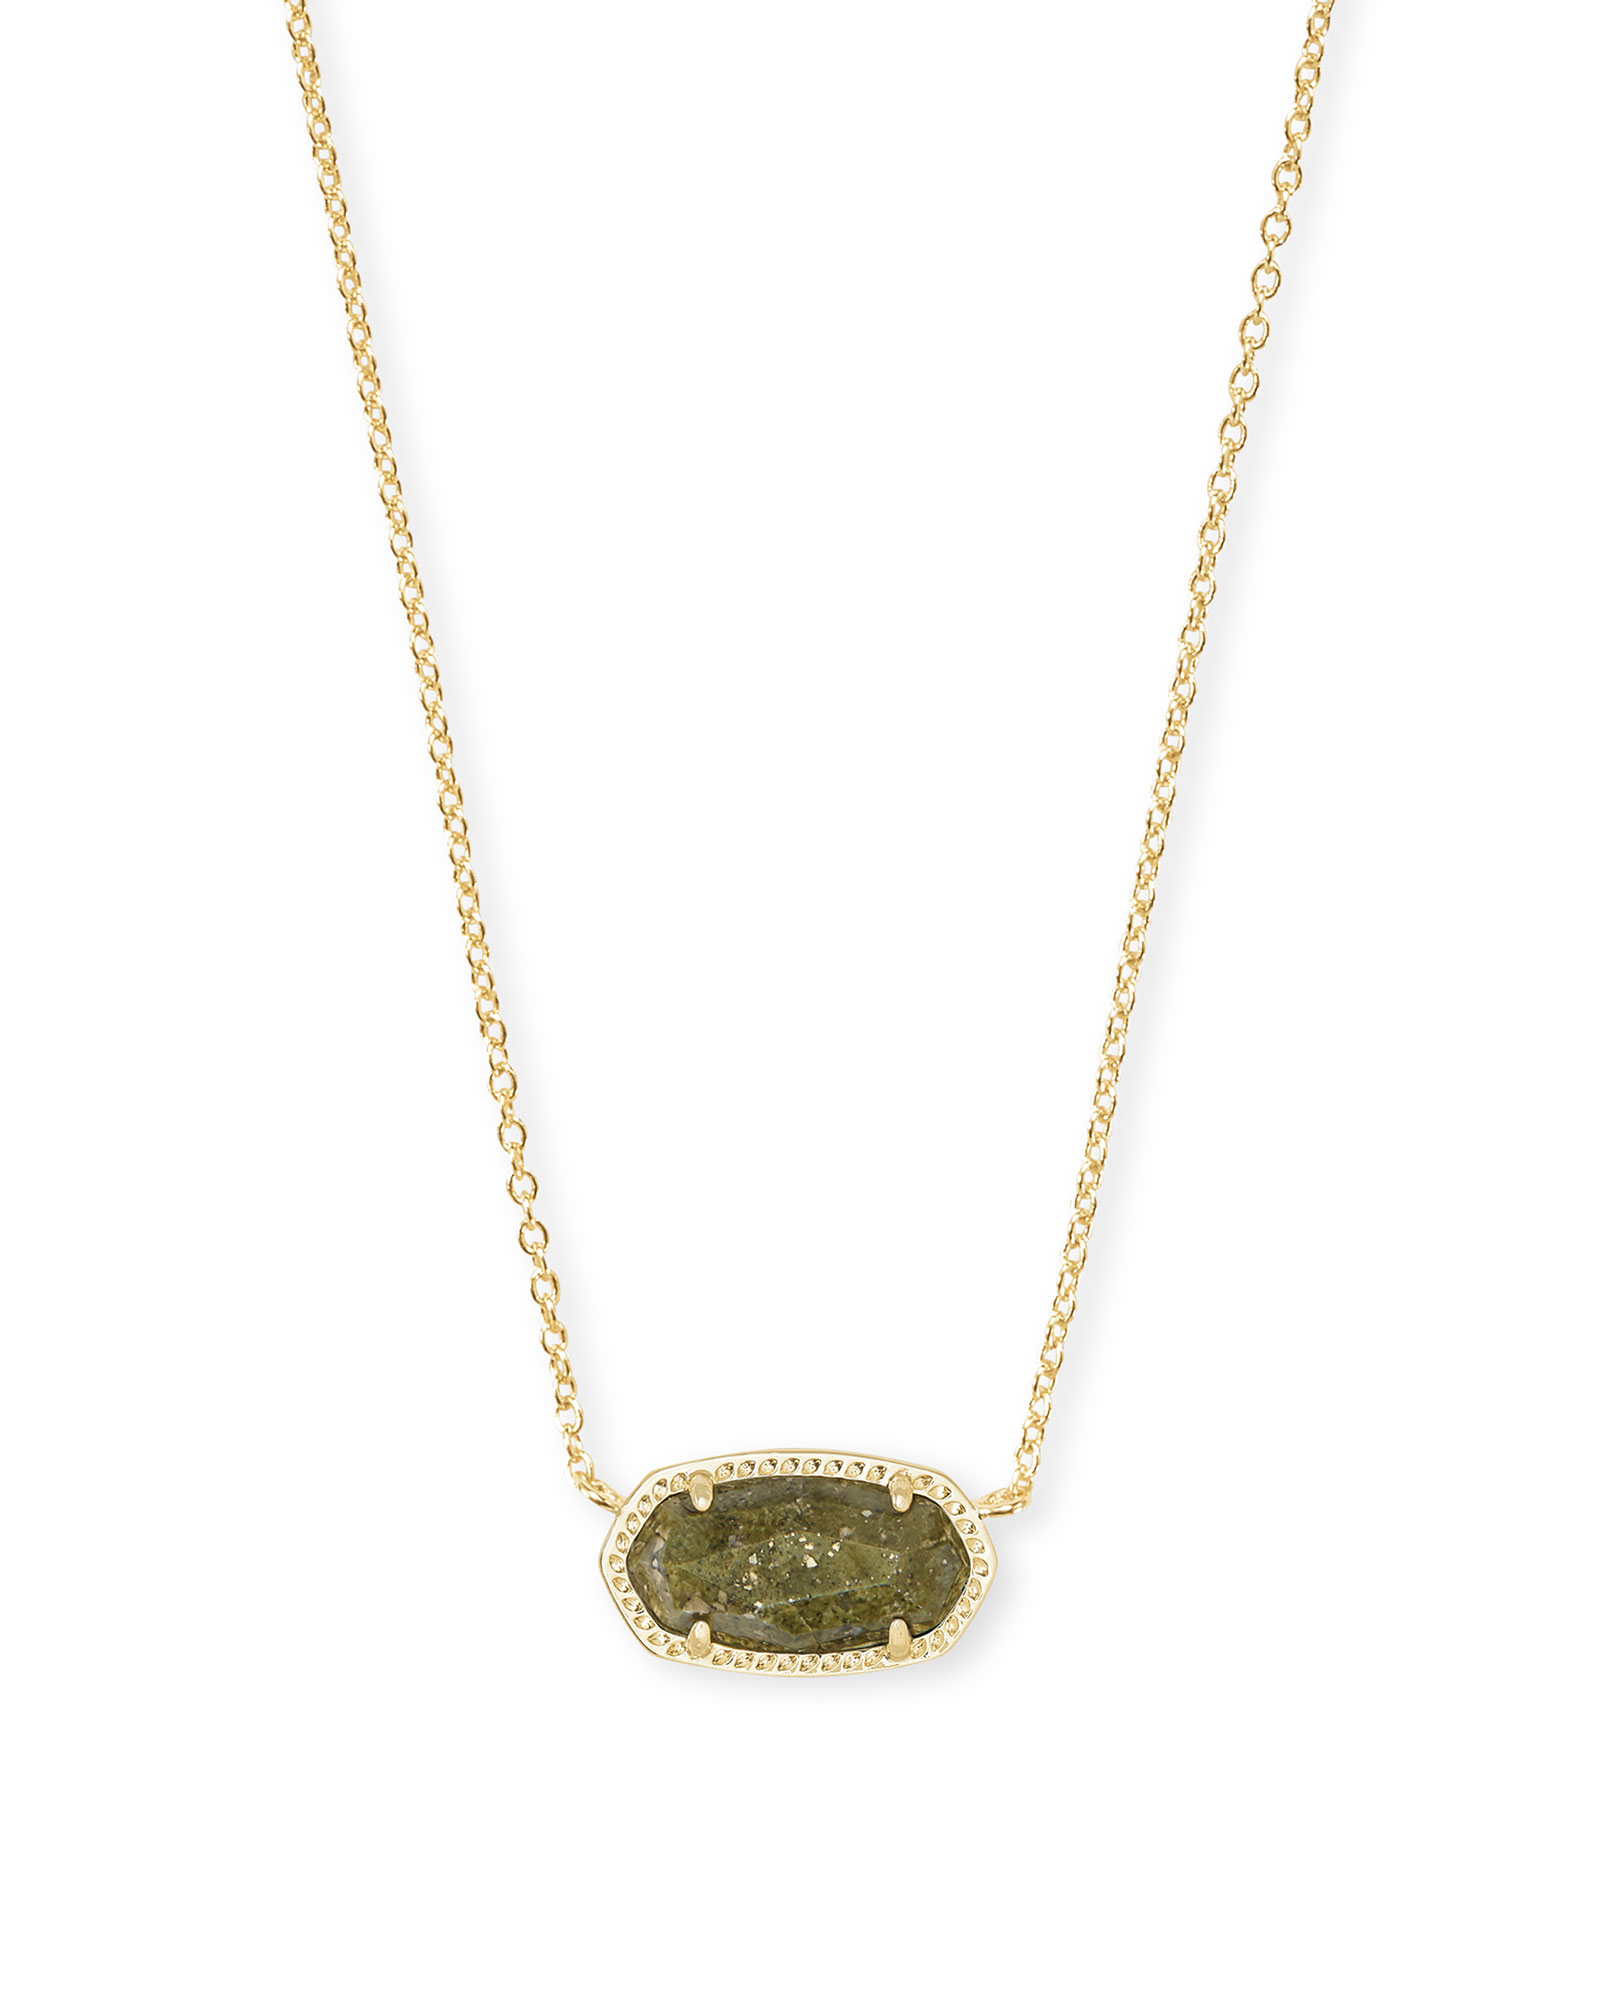 Elisa Gold Pendant Necklace in Olive Epidote